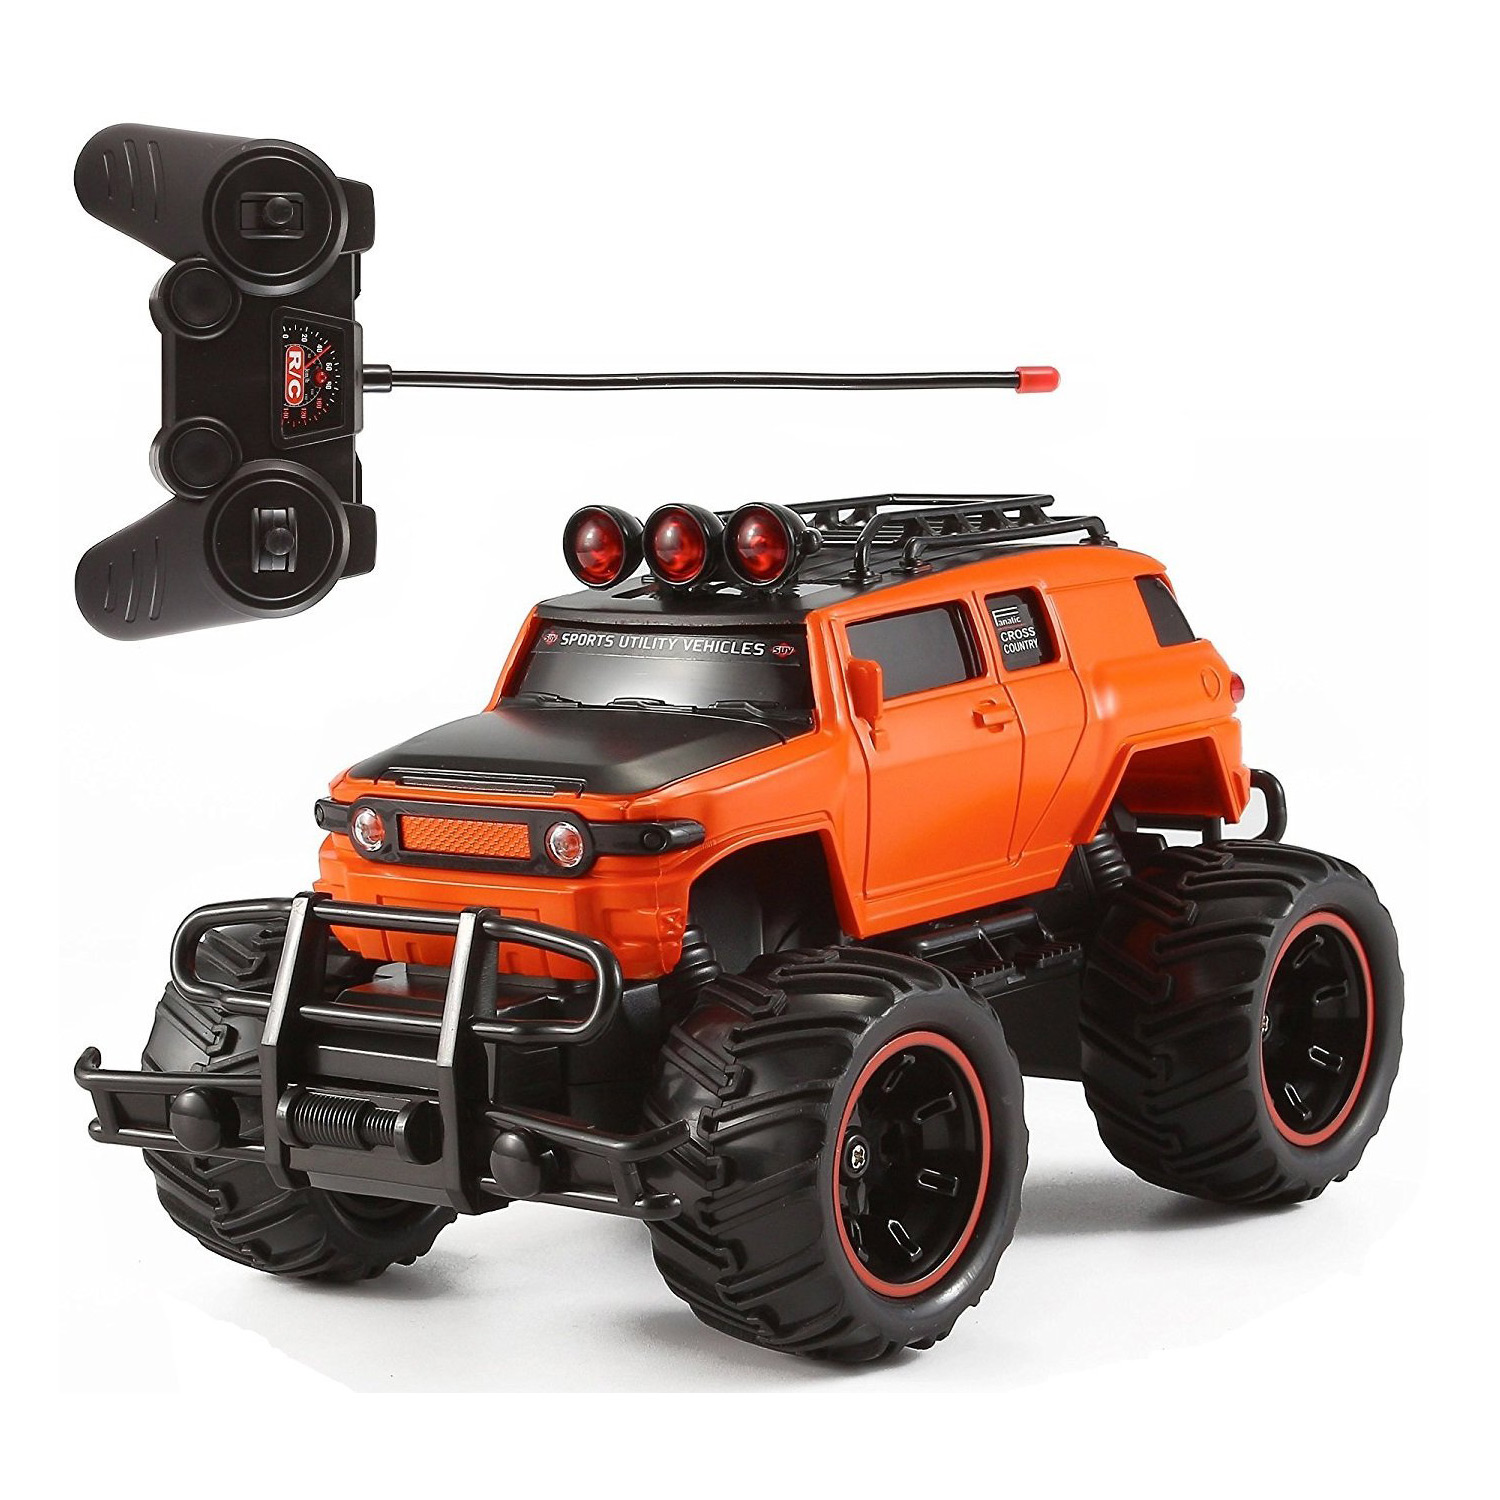 RC Monster Truck Toy Remote Control RTR Electric Vehicle Off Road High Speed Race Car 1:20 Scale Radio Controlled Orange Color